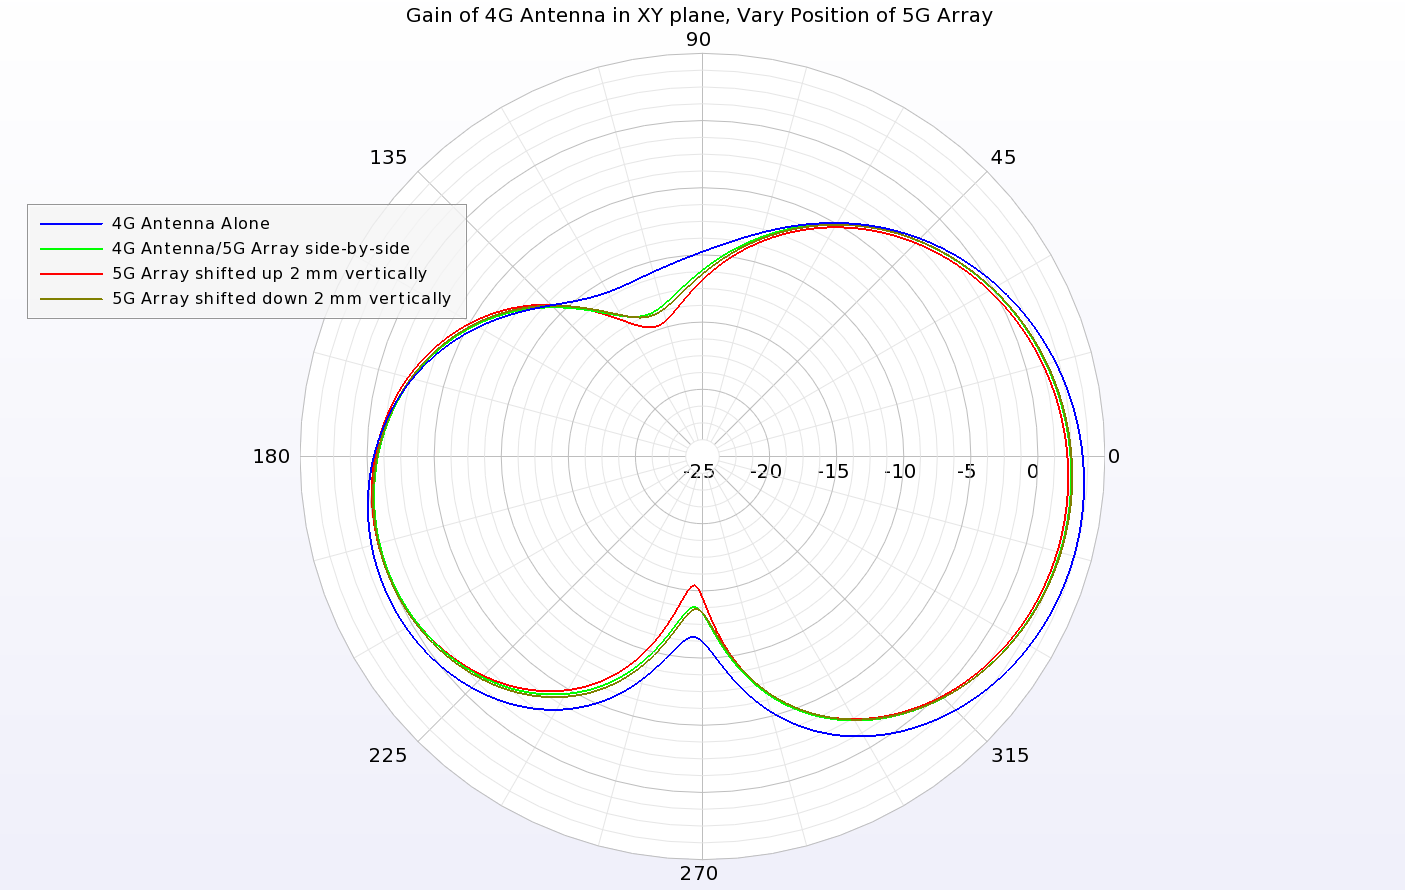 Figure 11: The gain pattern of the 4G antenna in the XY plane is only slightly impacted by the movement of the 5G antenna array.